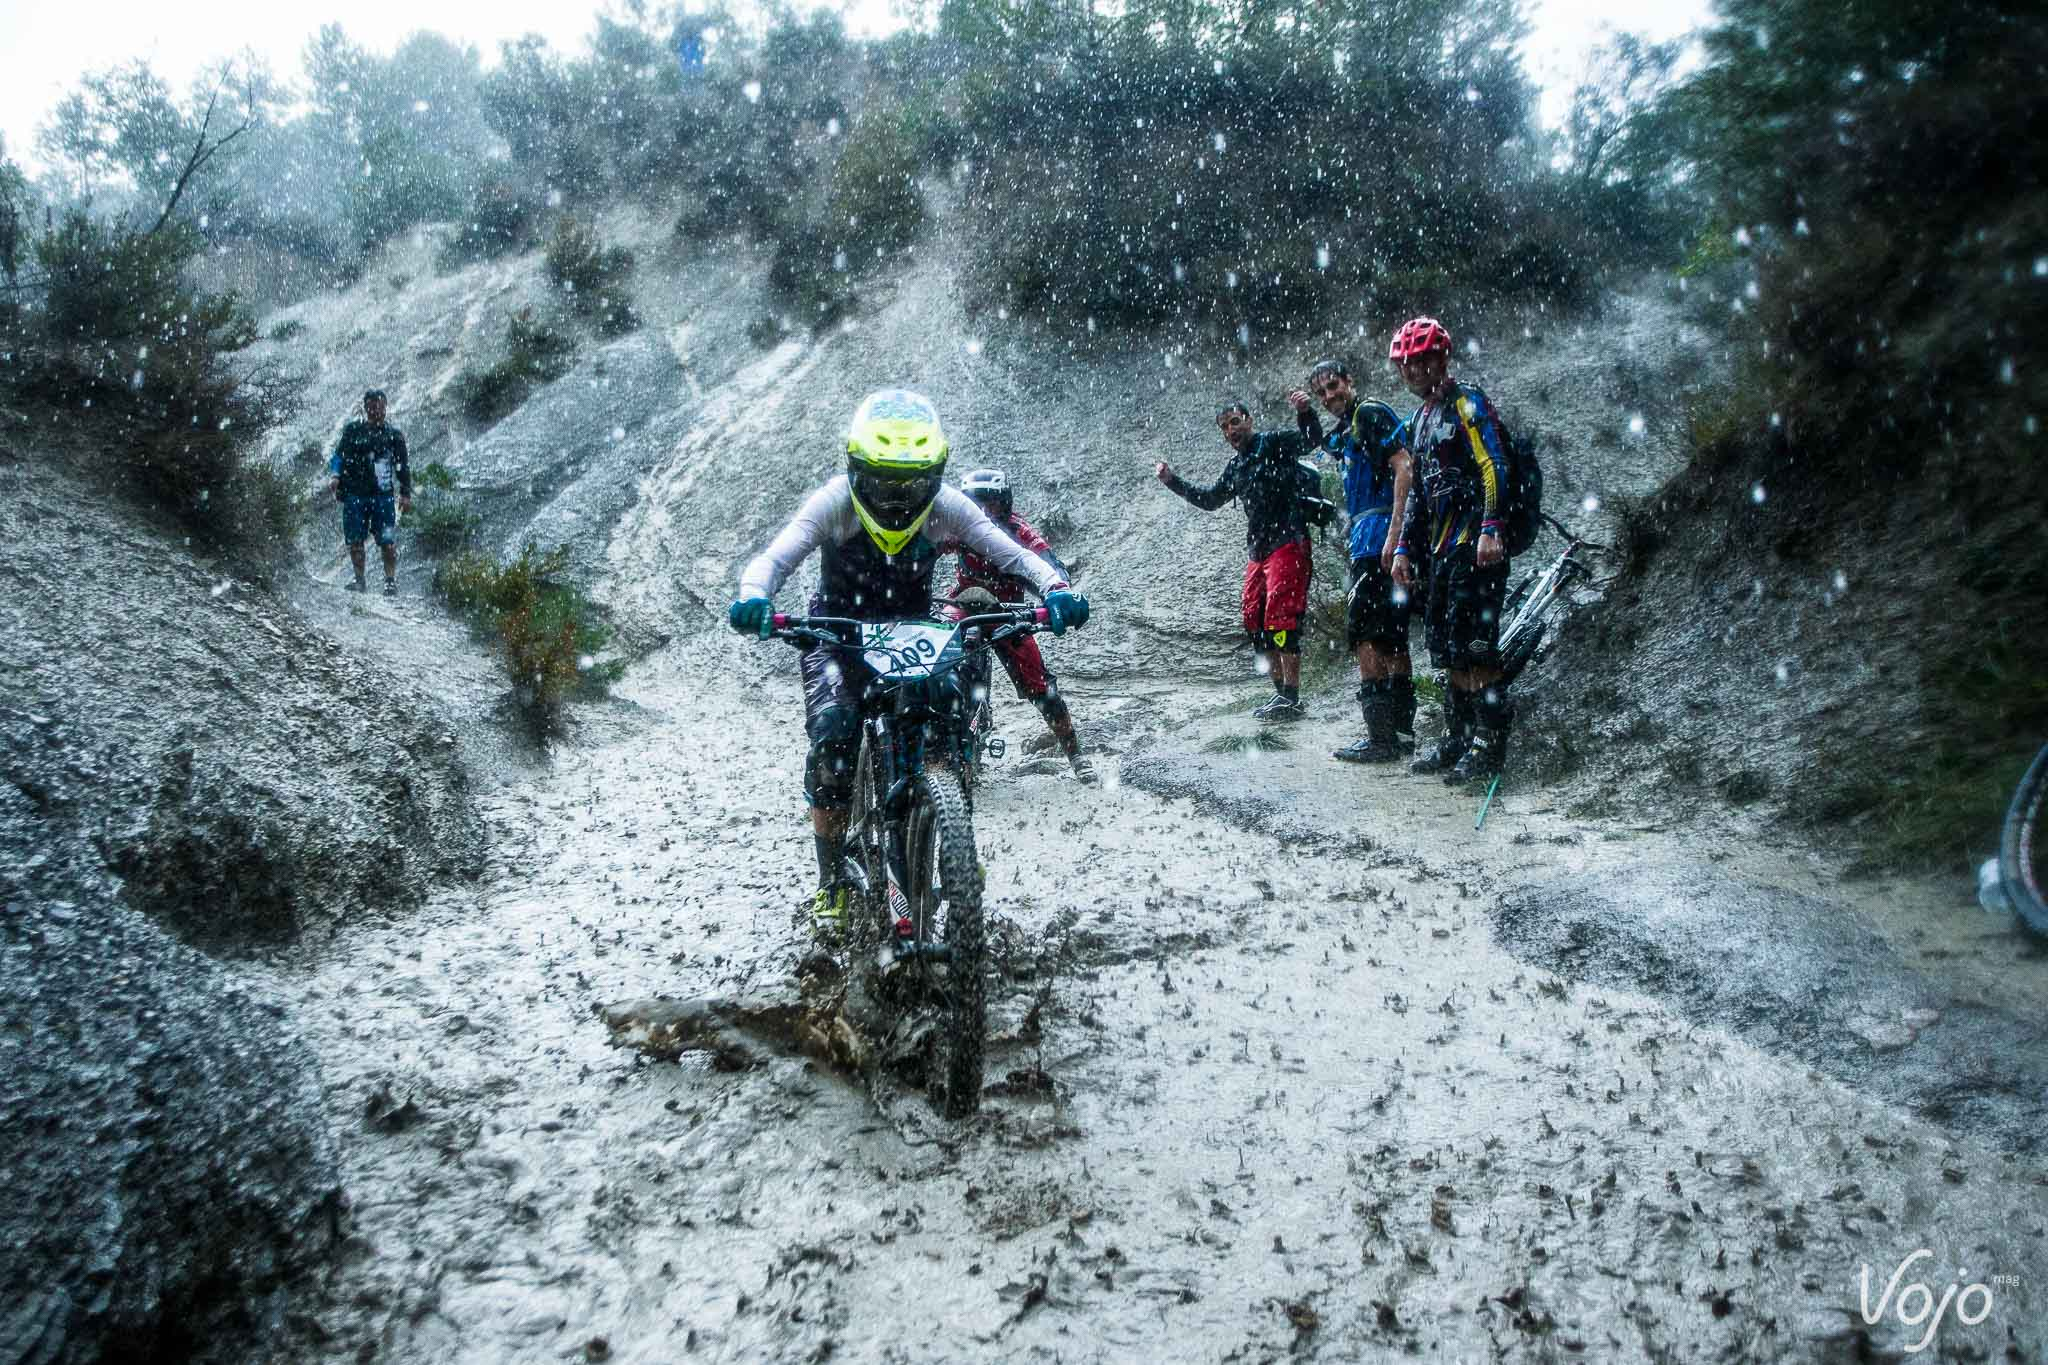 Enduro_World_Series_7_Spain_Ainsa_Zona_Zero_2015_Copyright_VojoMag-24